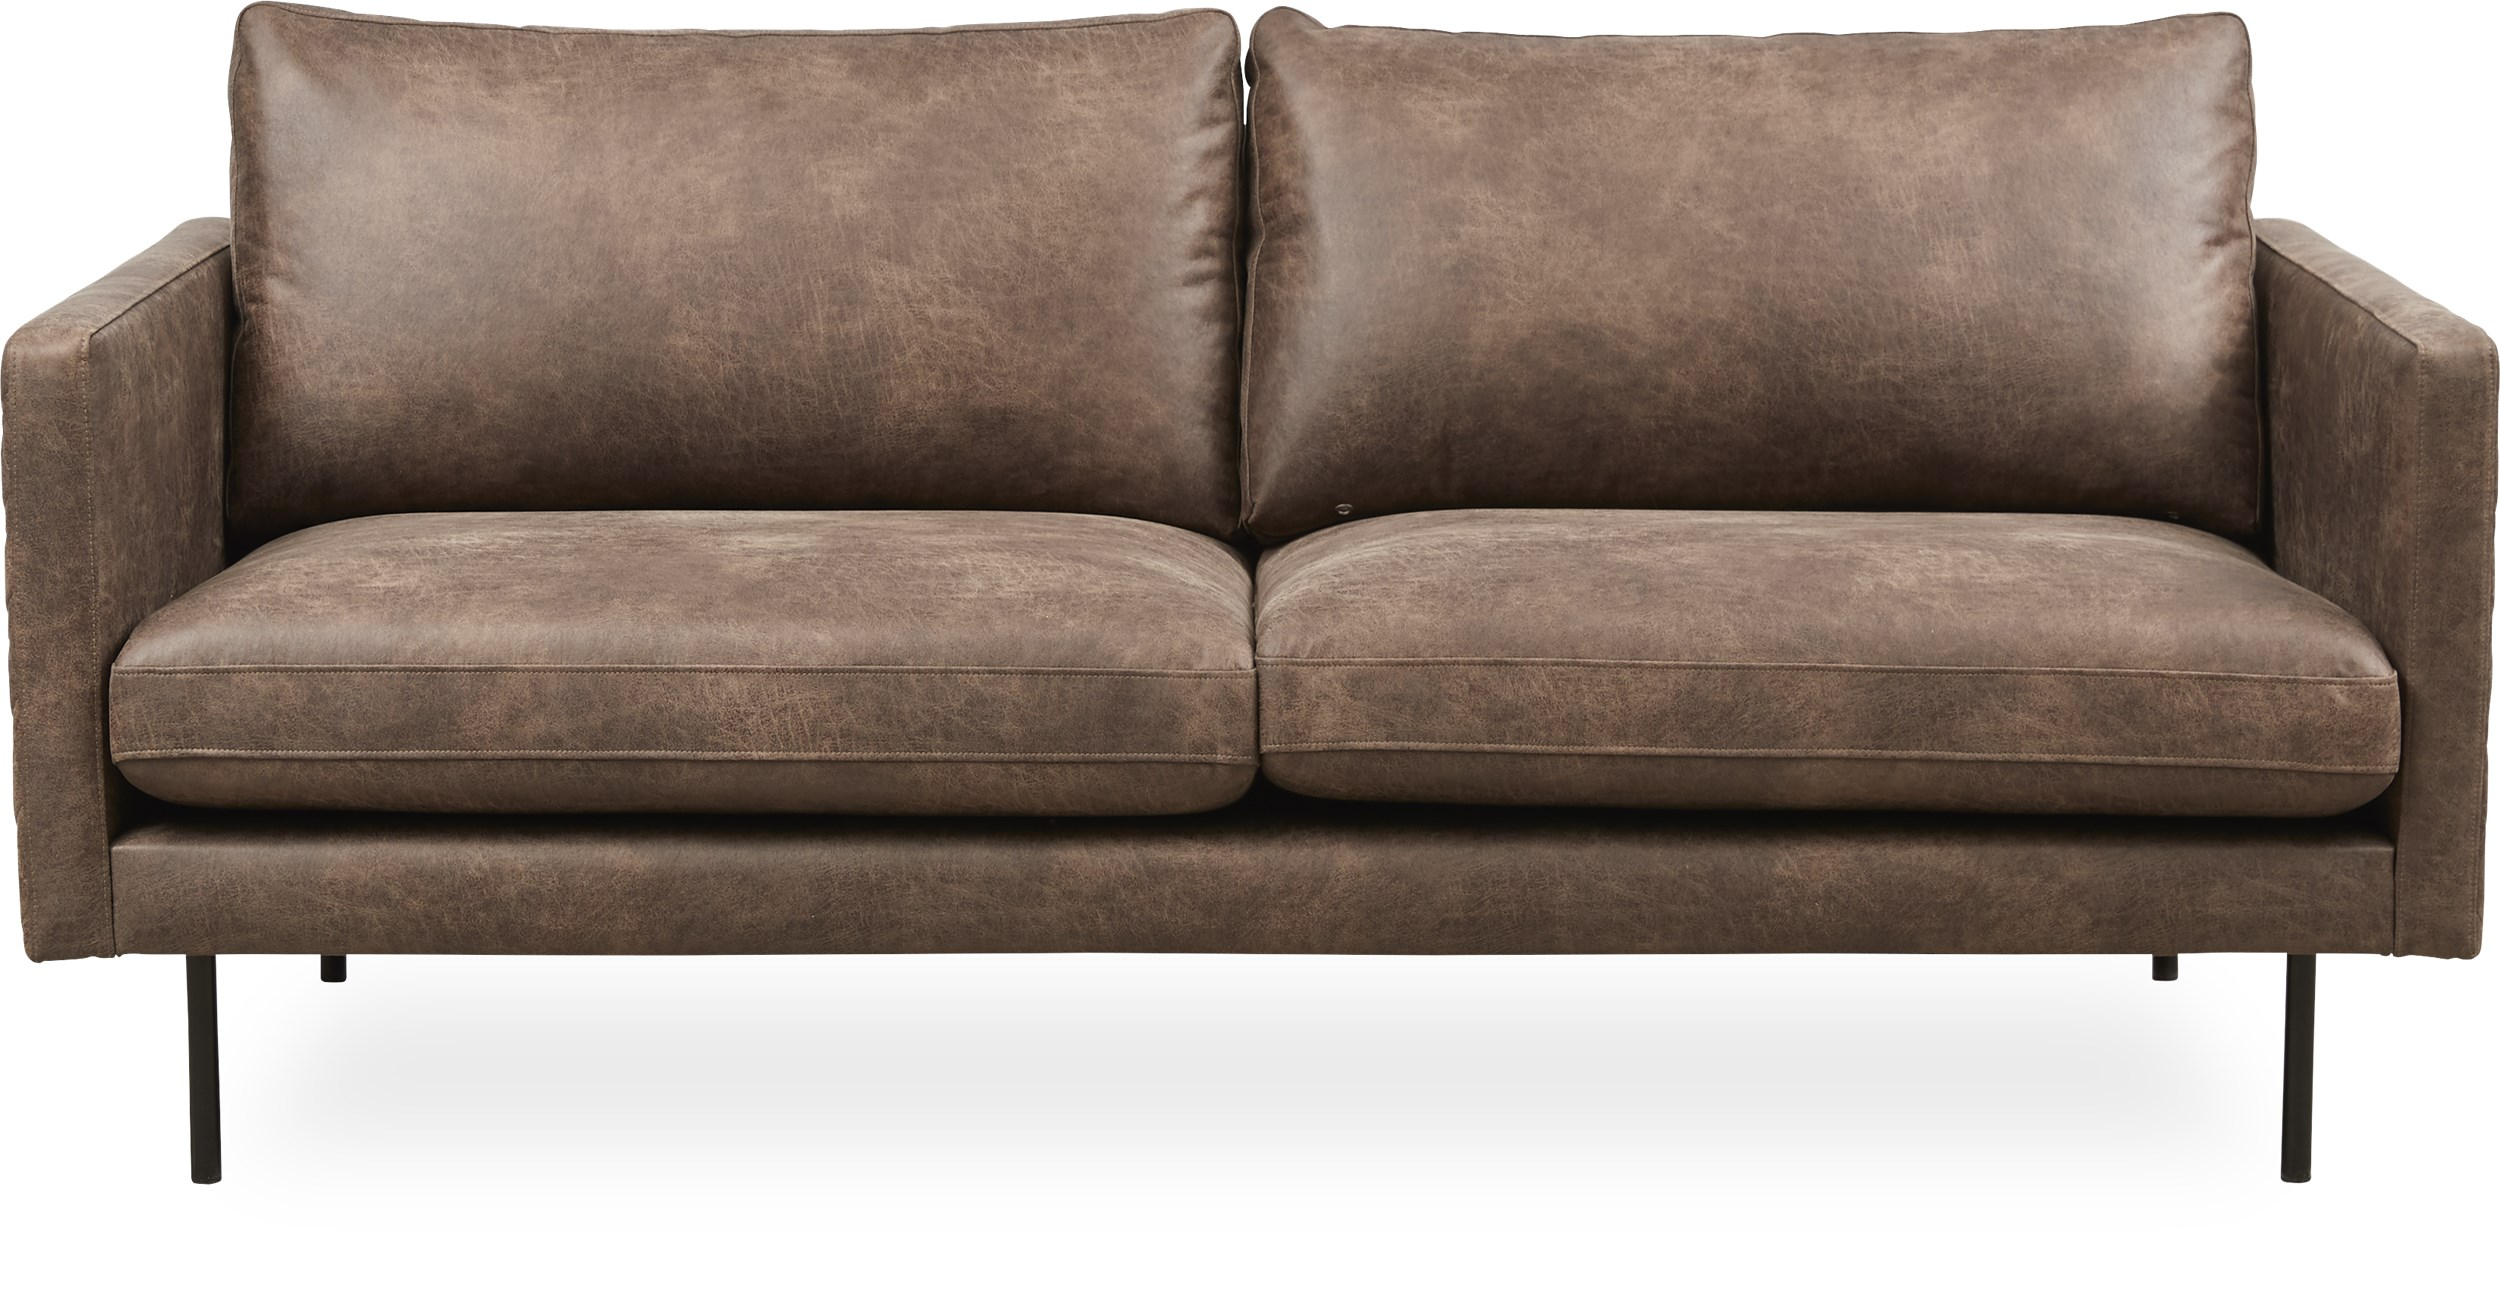 Sicilia 2 pers. Sofa - Colorado 4 Brown bonded læder og ben i sort metal